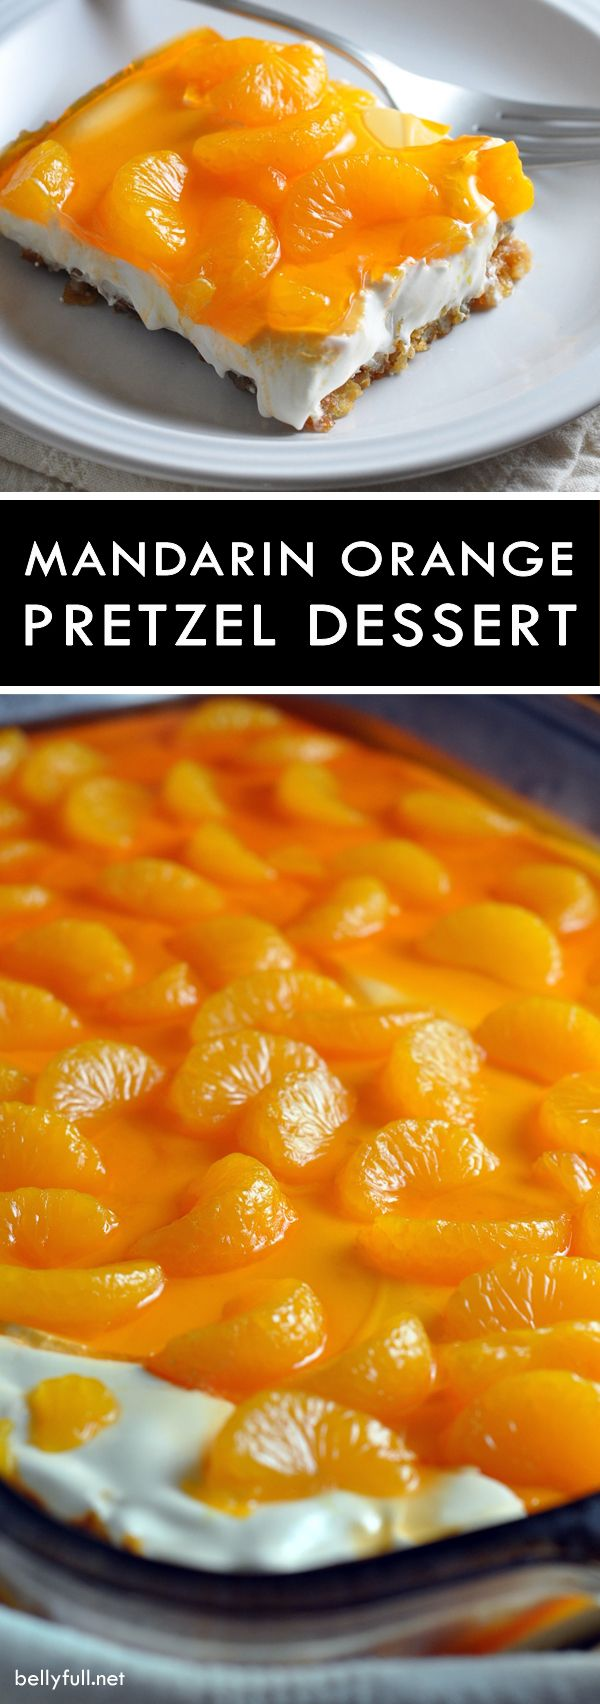 This classic dessert features a crunchy pretzel crust a creamy center and silky top with mandarin oranges and orange flavored gelatin.